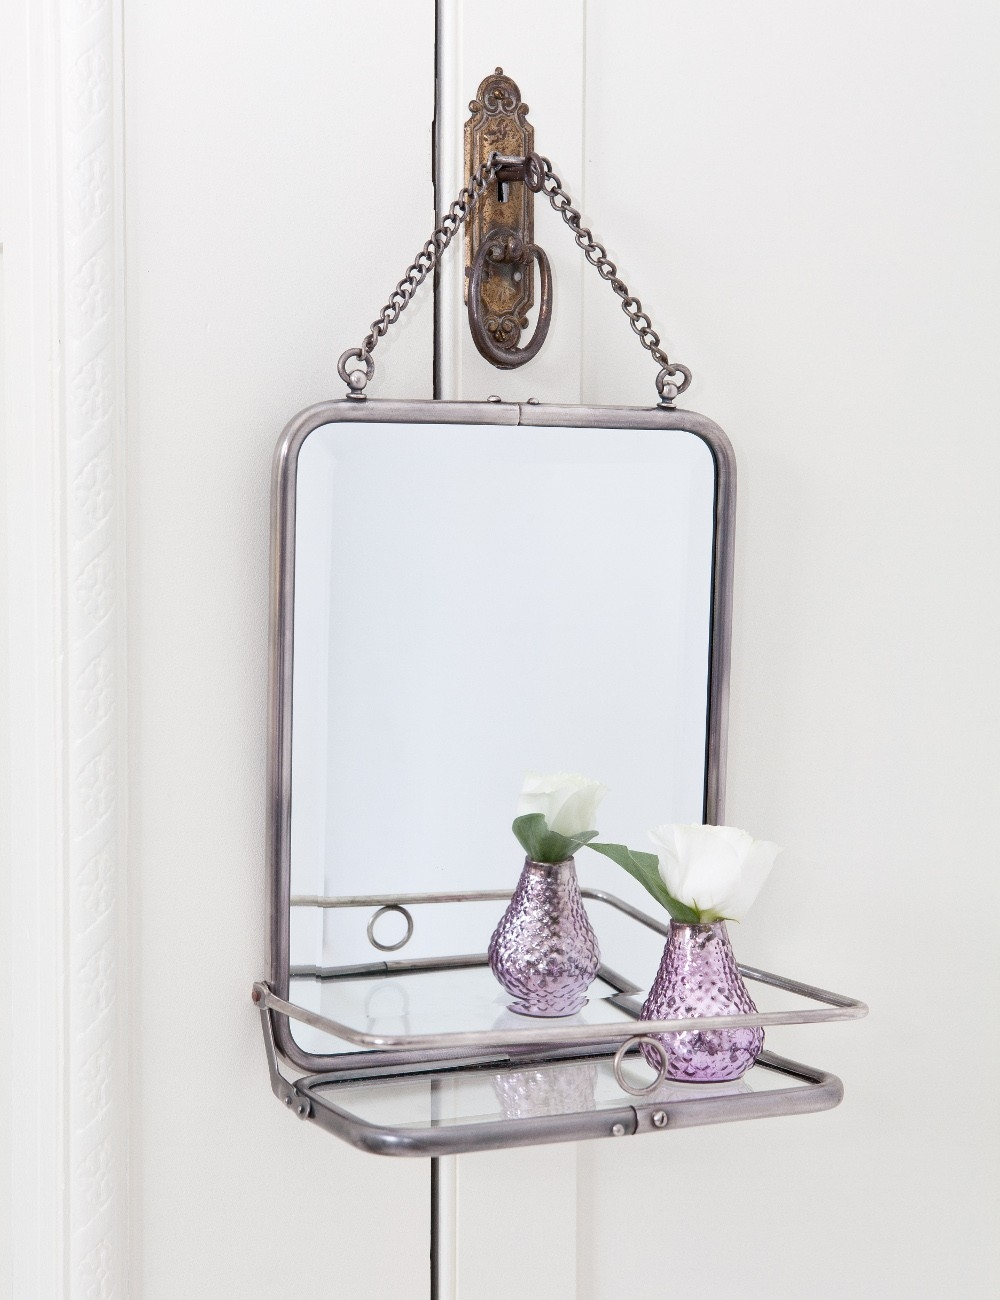 Bathroom French Bathroom Mirror Pictures Decorations Inspiration With Regard To French Style Bathroom Mirror (Image 2 of 15)